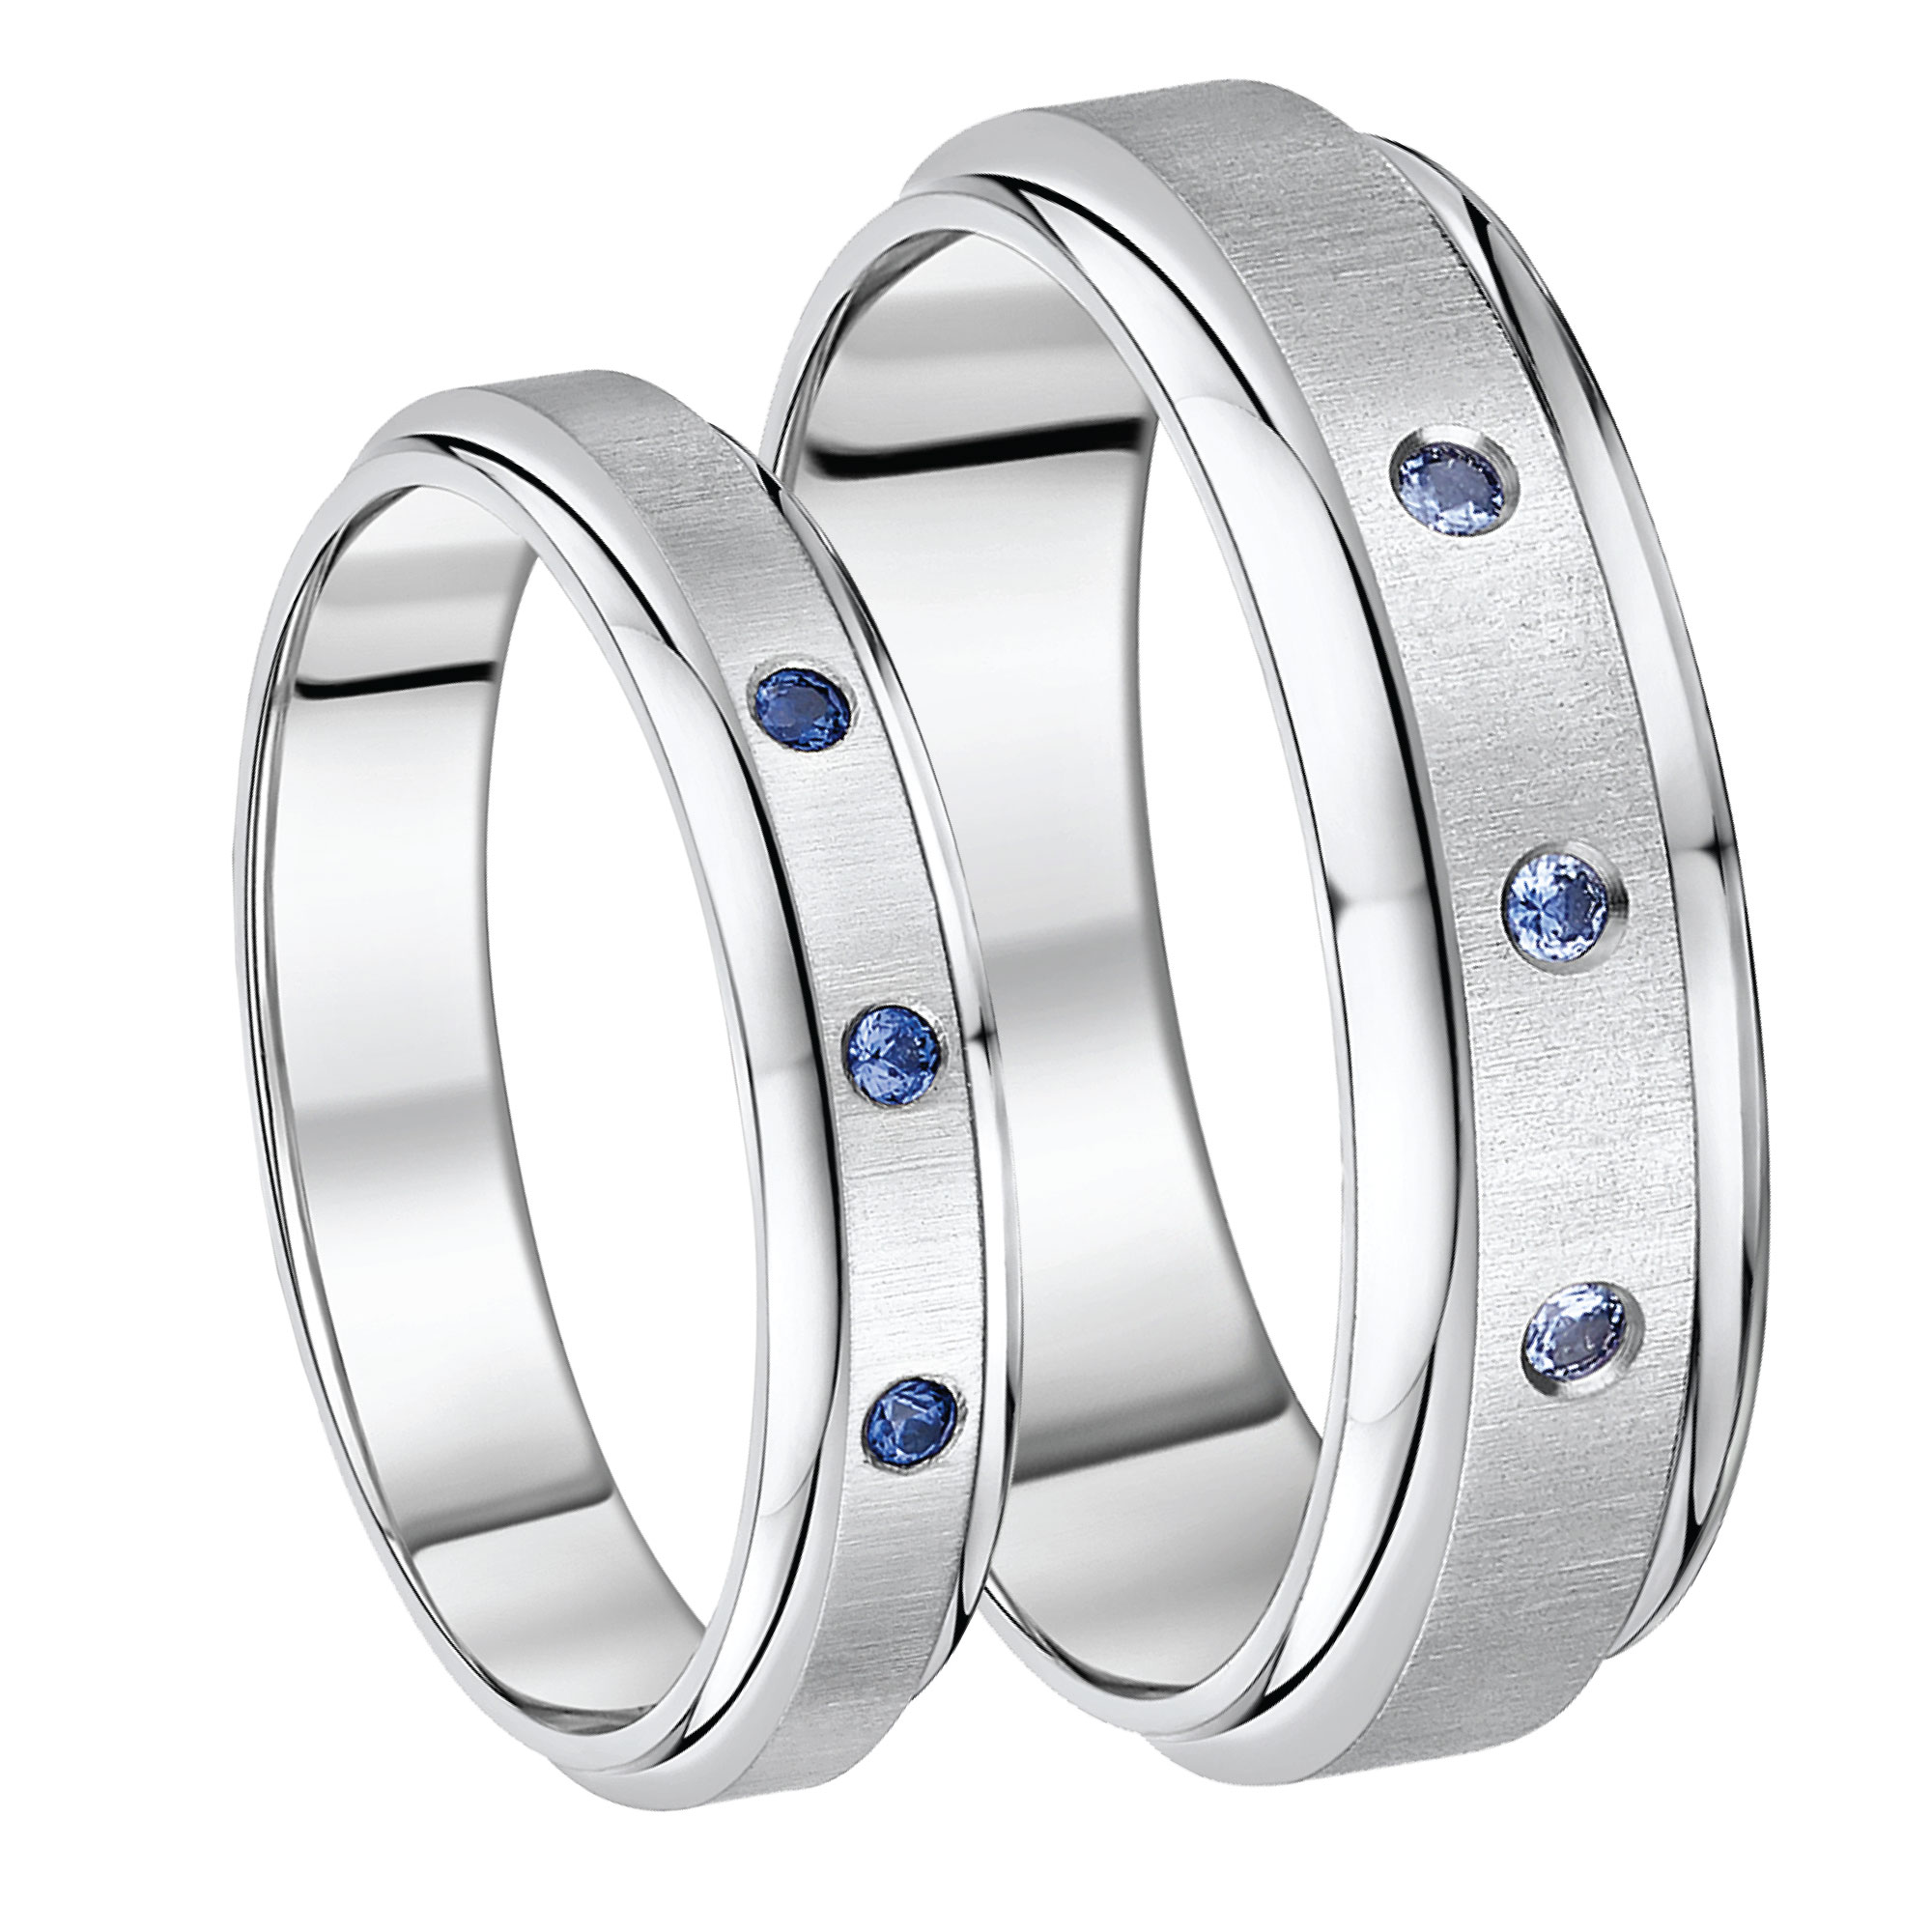 It is just a photo of His & Hers Titanium Sapphire Set Wedding Bands 33&33mm - Titanium